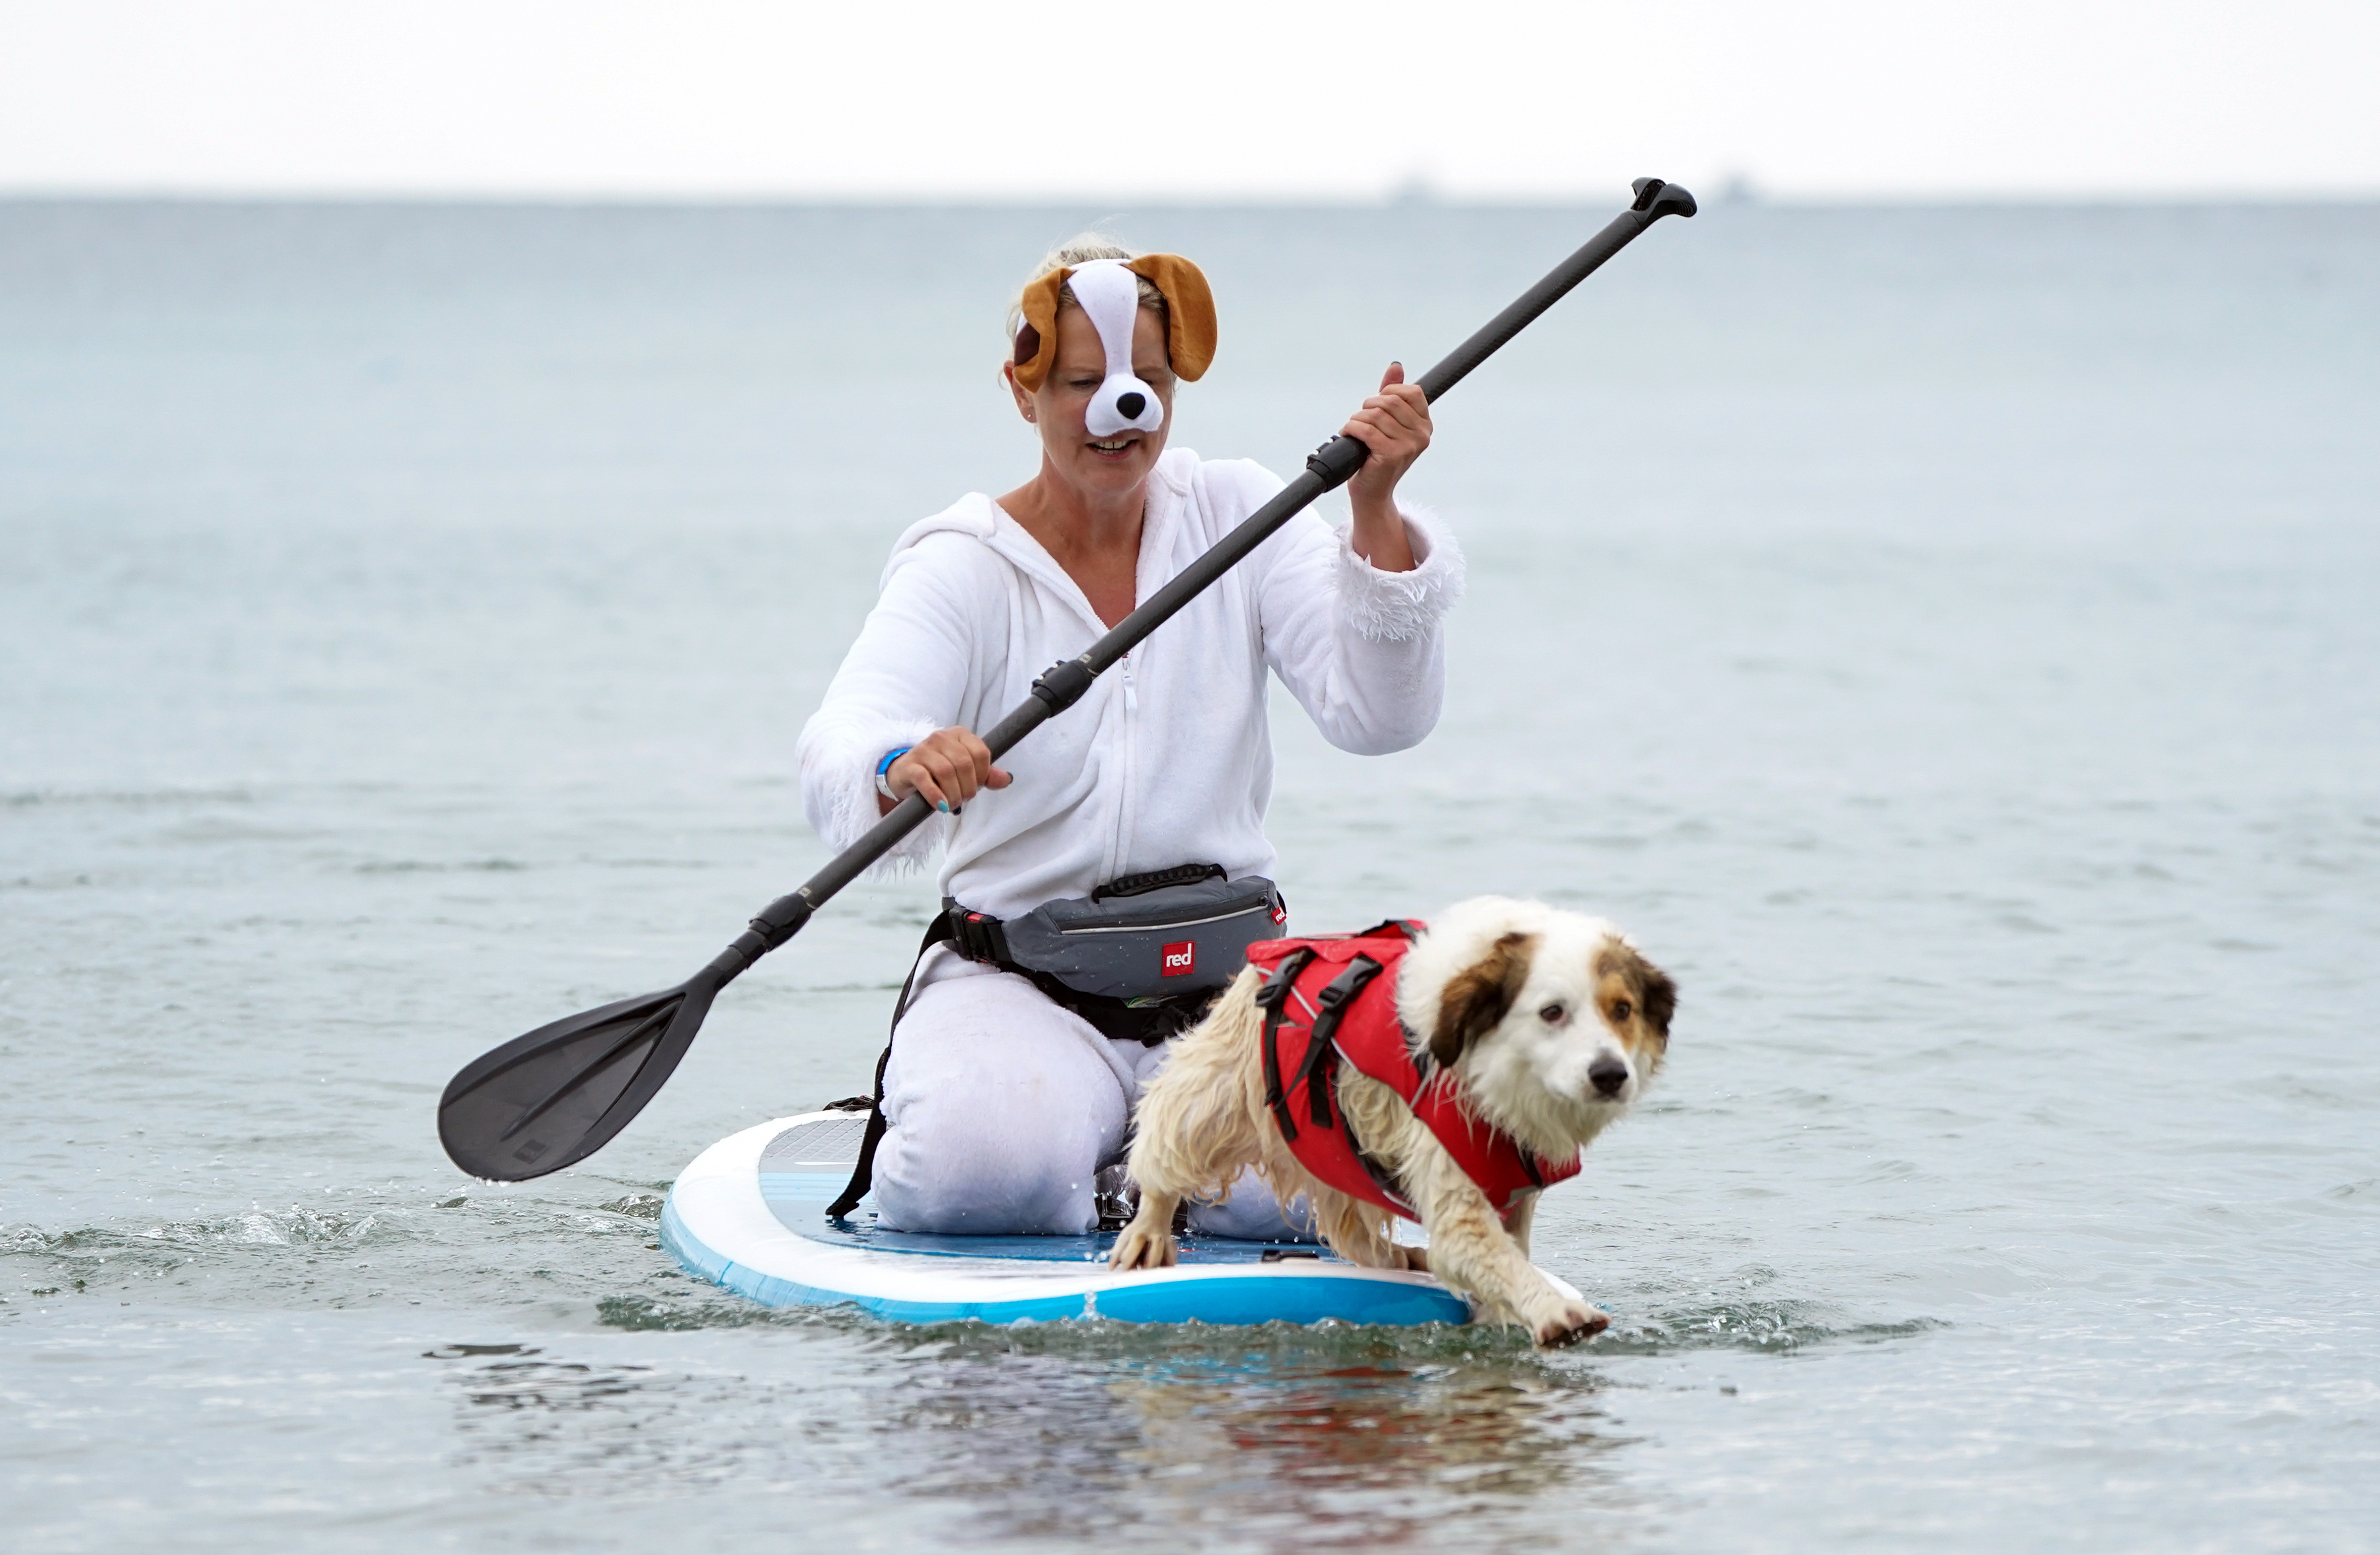 <p>Liz Wilkinson and her dog Diogie, a Sprollie cross, take part in Dogmasters, the country's only dog surfing and paddleboard championship, at Branksome Beach in Poole, Dorset. Picture date: Sunday July 25, 2021.</p>